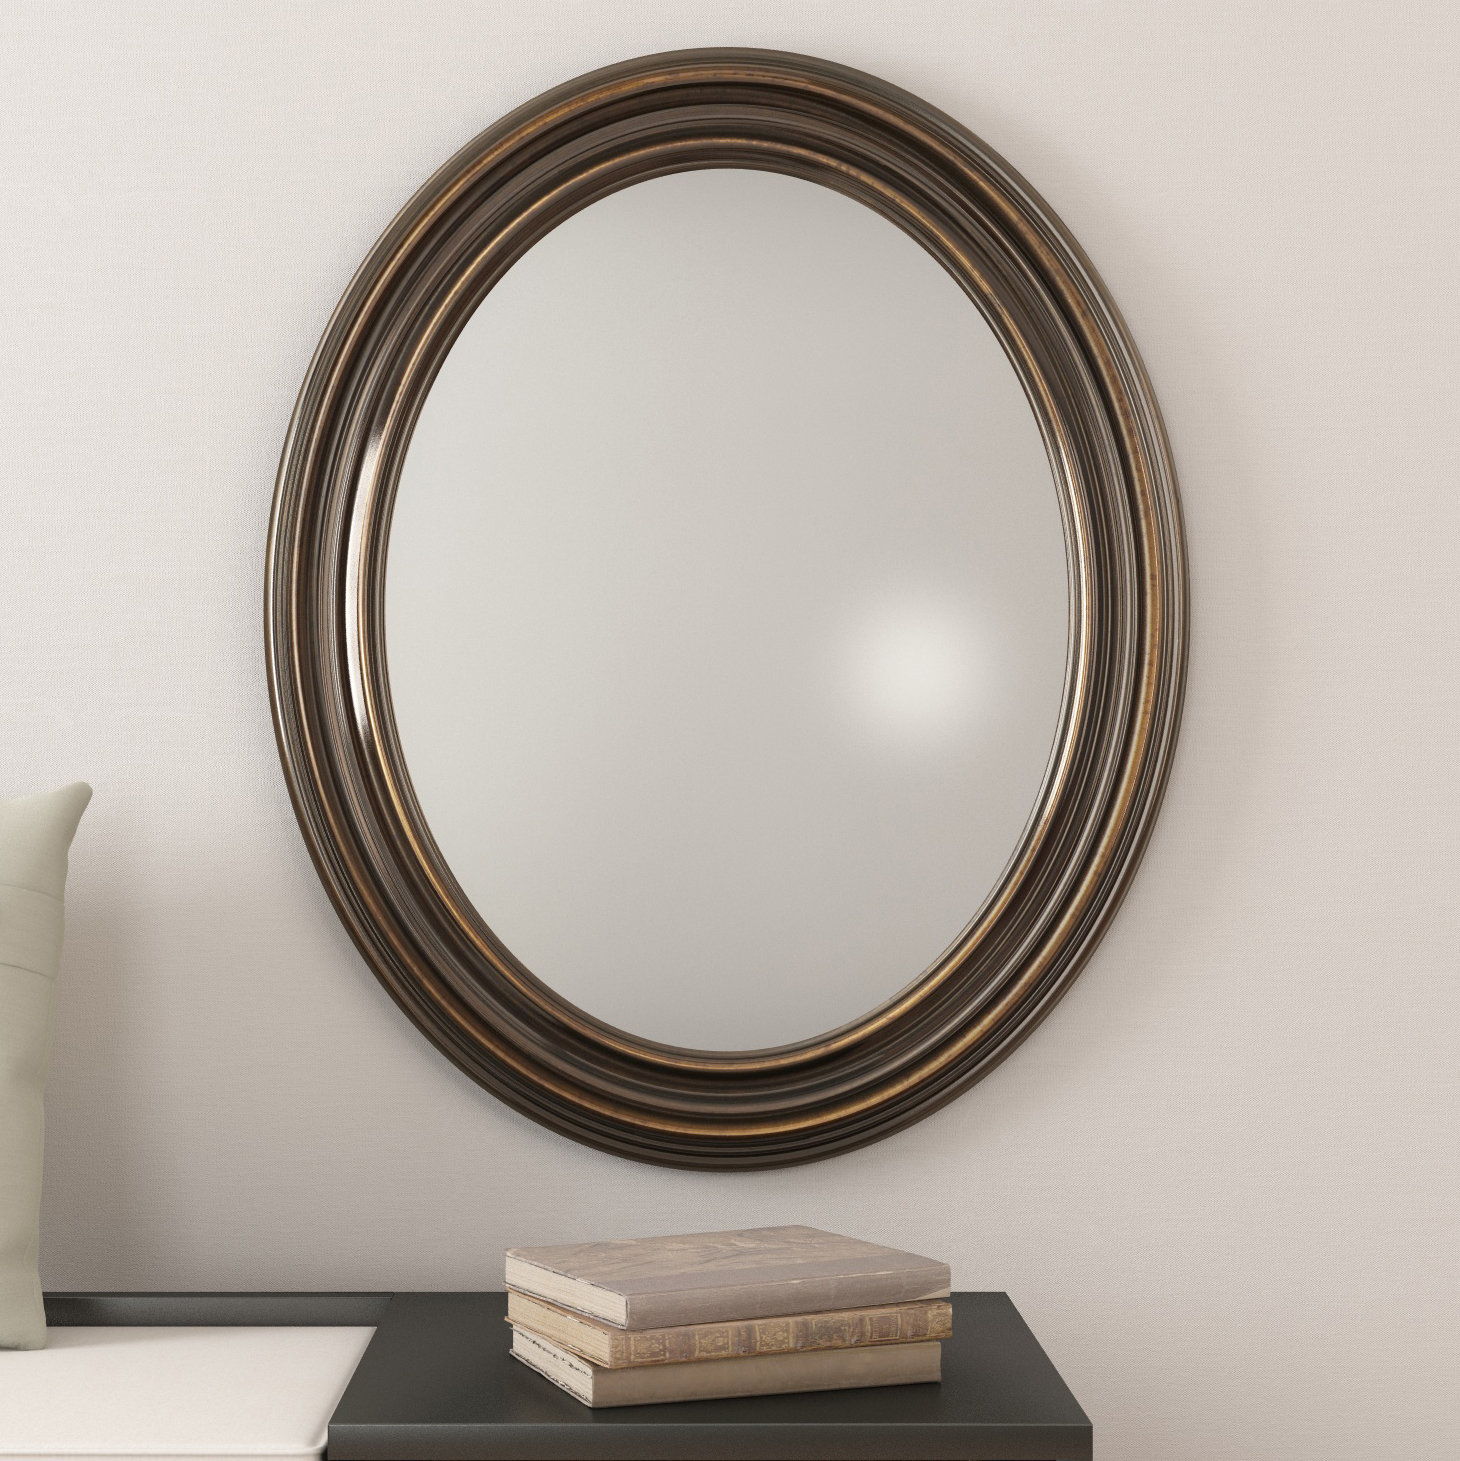 Farmhouse & Rustic Darby Home Co Wall & Accent Mirrors In Burnes Oval Traditional Wall Mirrors (Image 6 of 20)